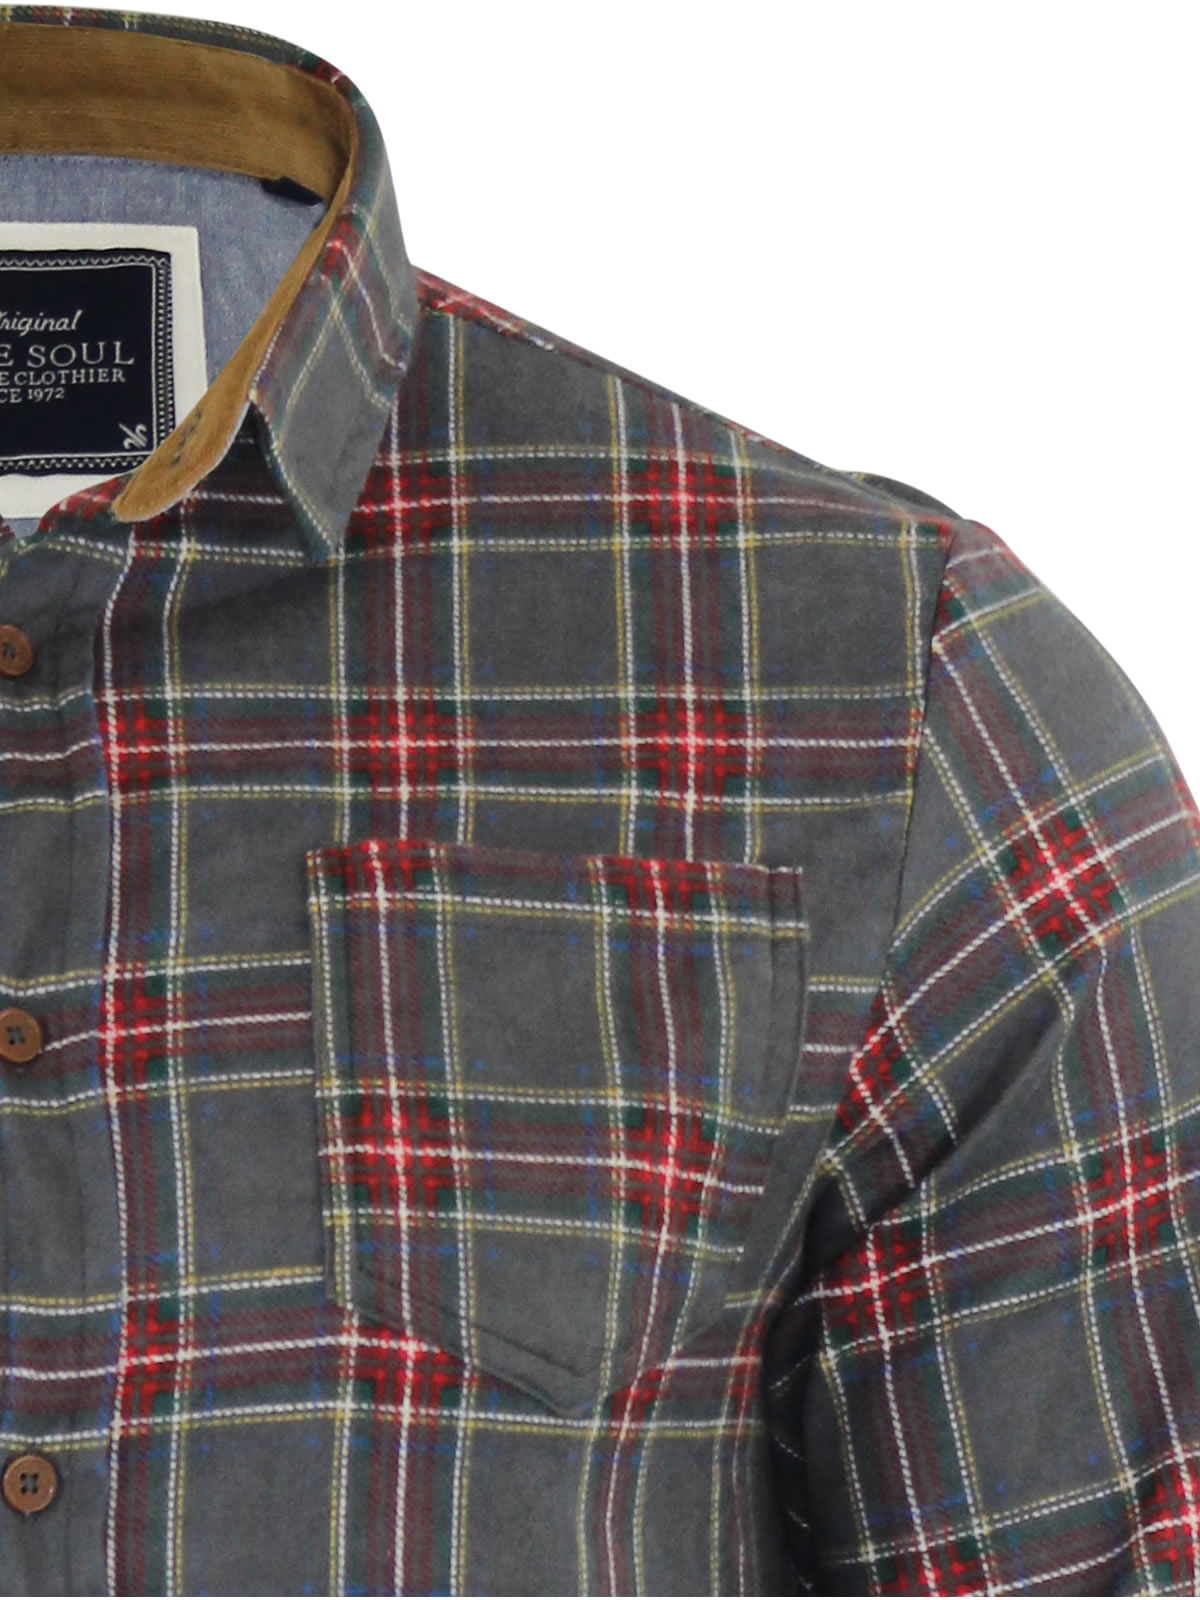 Mens-Check-Shirt-Brave-Soul-Edvard-Flannel-Brushed-Cotton-Long-Sleeve-Casual-Top thumbnail 7